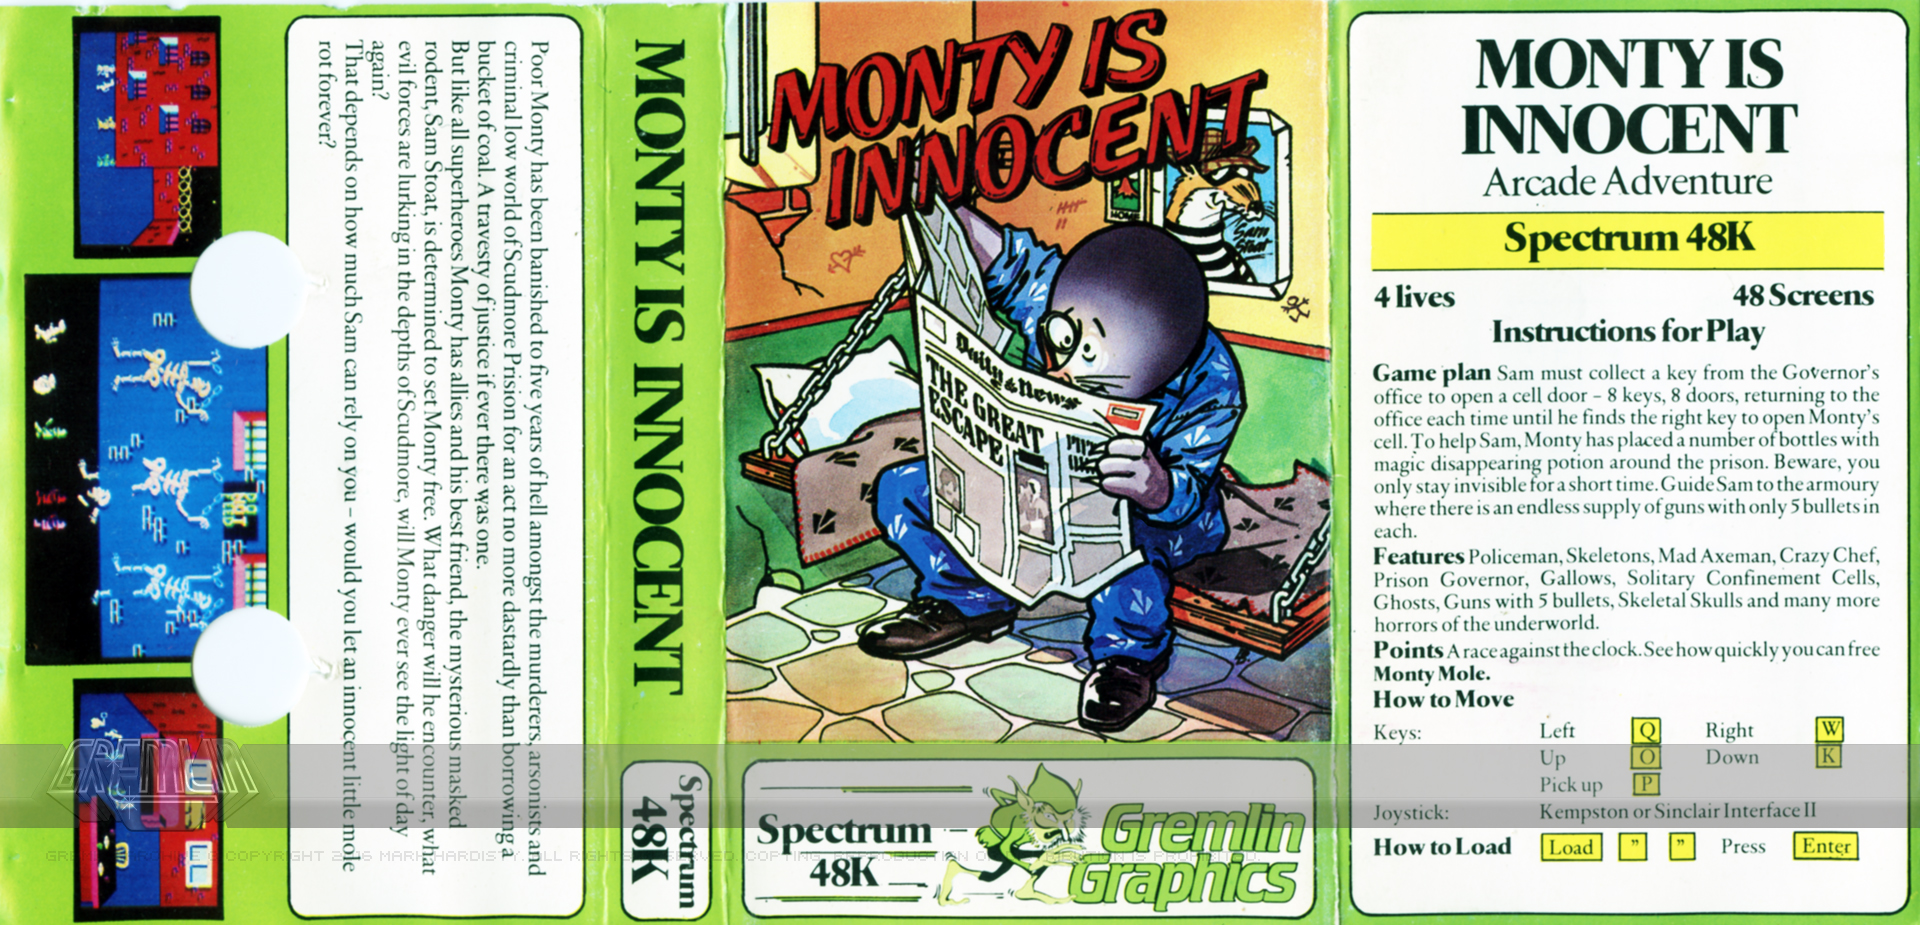 Monty Is Innocent